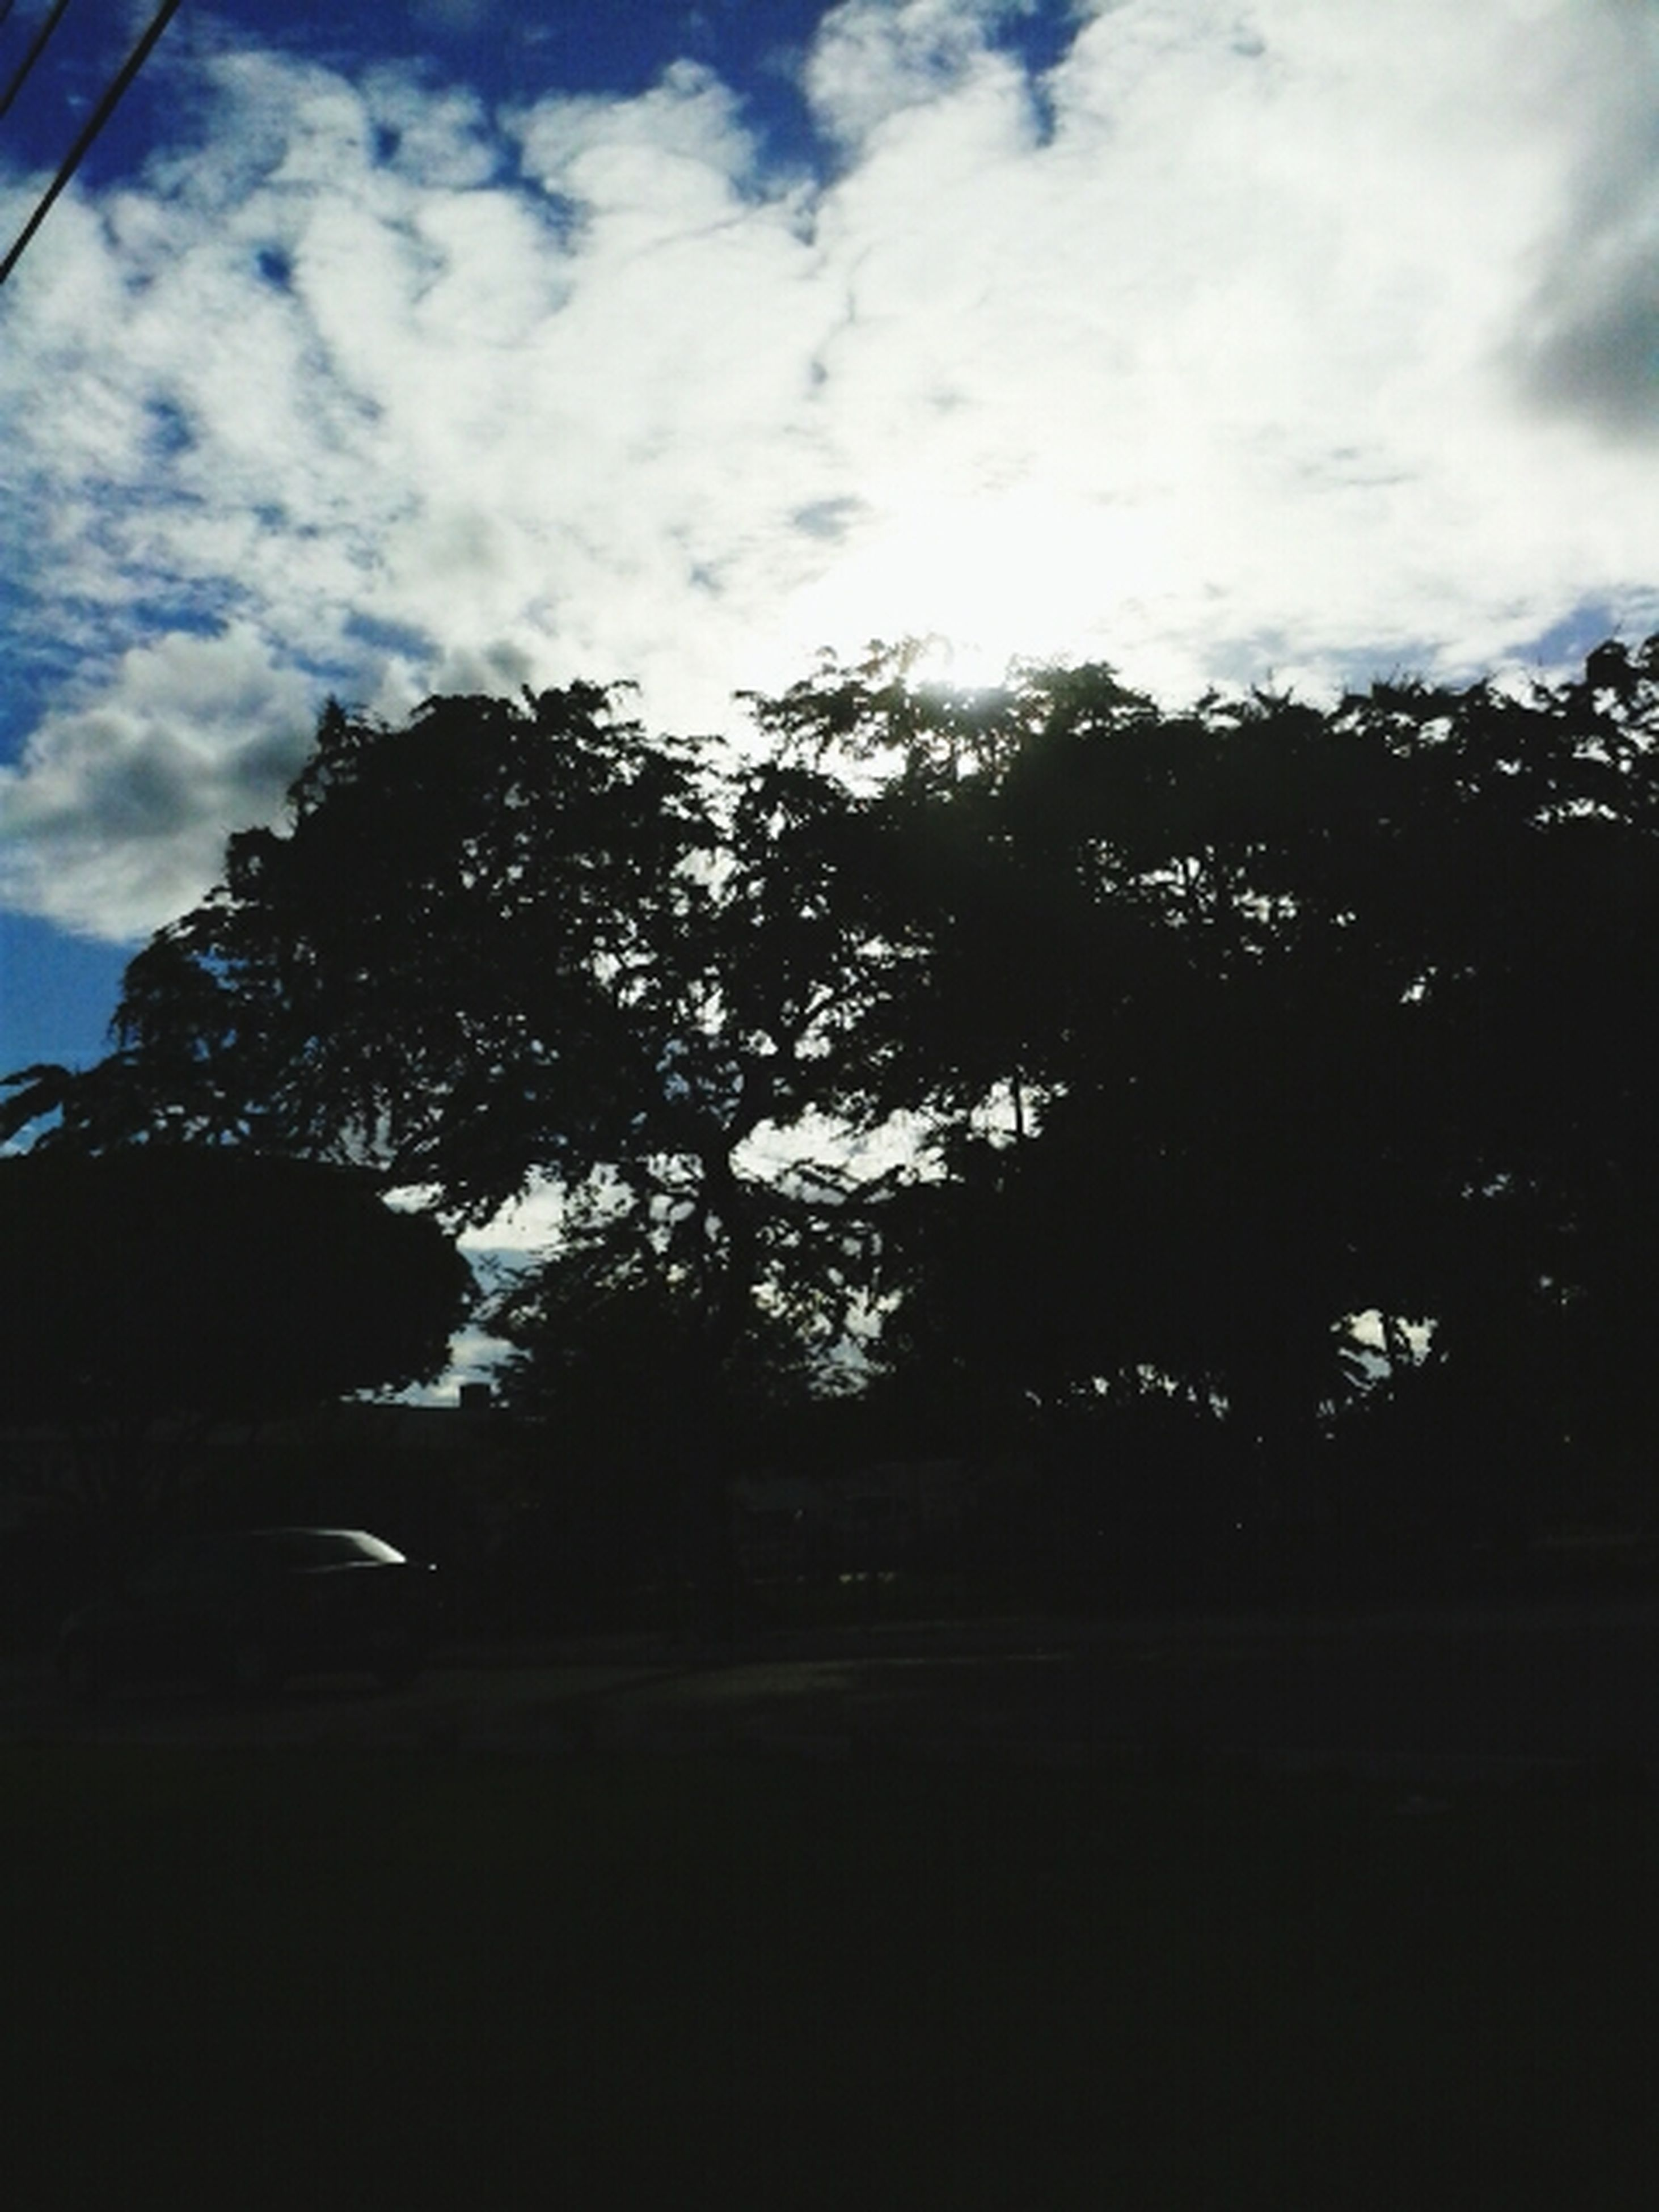 tree, sky, cloud - sky, silhouette, cloud, low angle view, tranquility, growth, cloudy, nature, tranquil scene, beauty in nature, scenics, no people, sunlight, outdoors, day, dusk, branch, dark